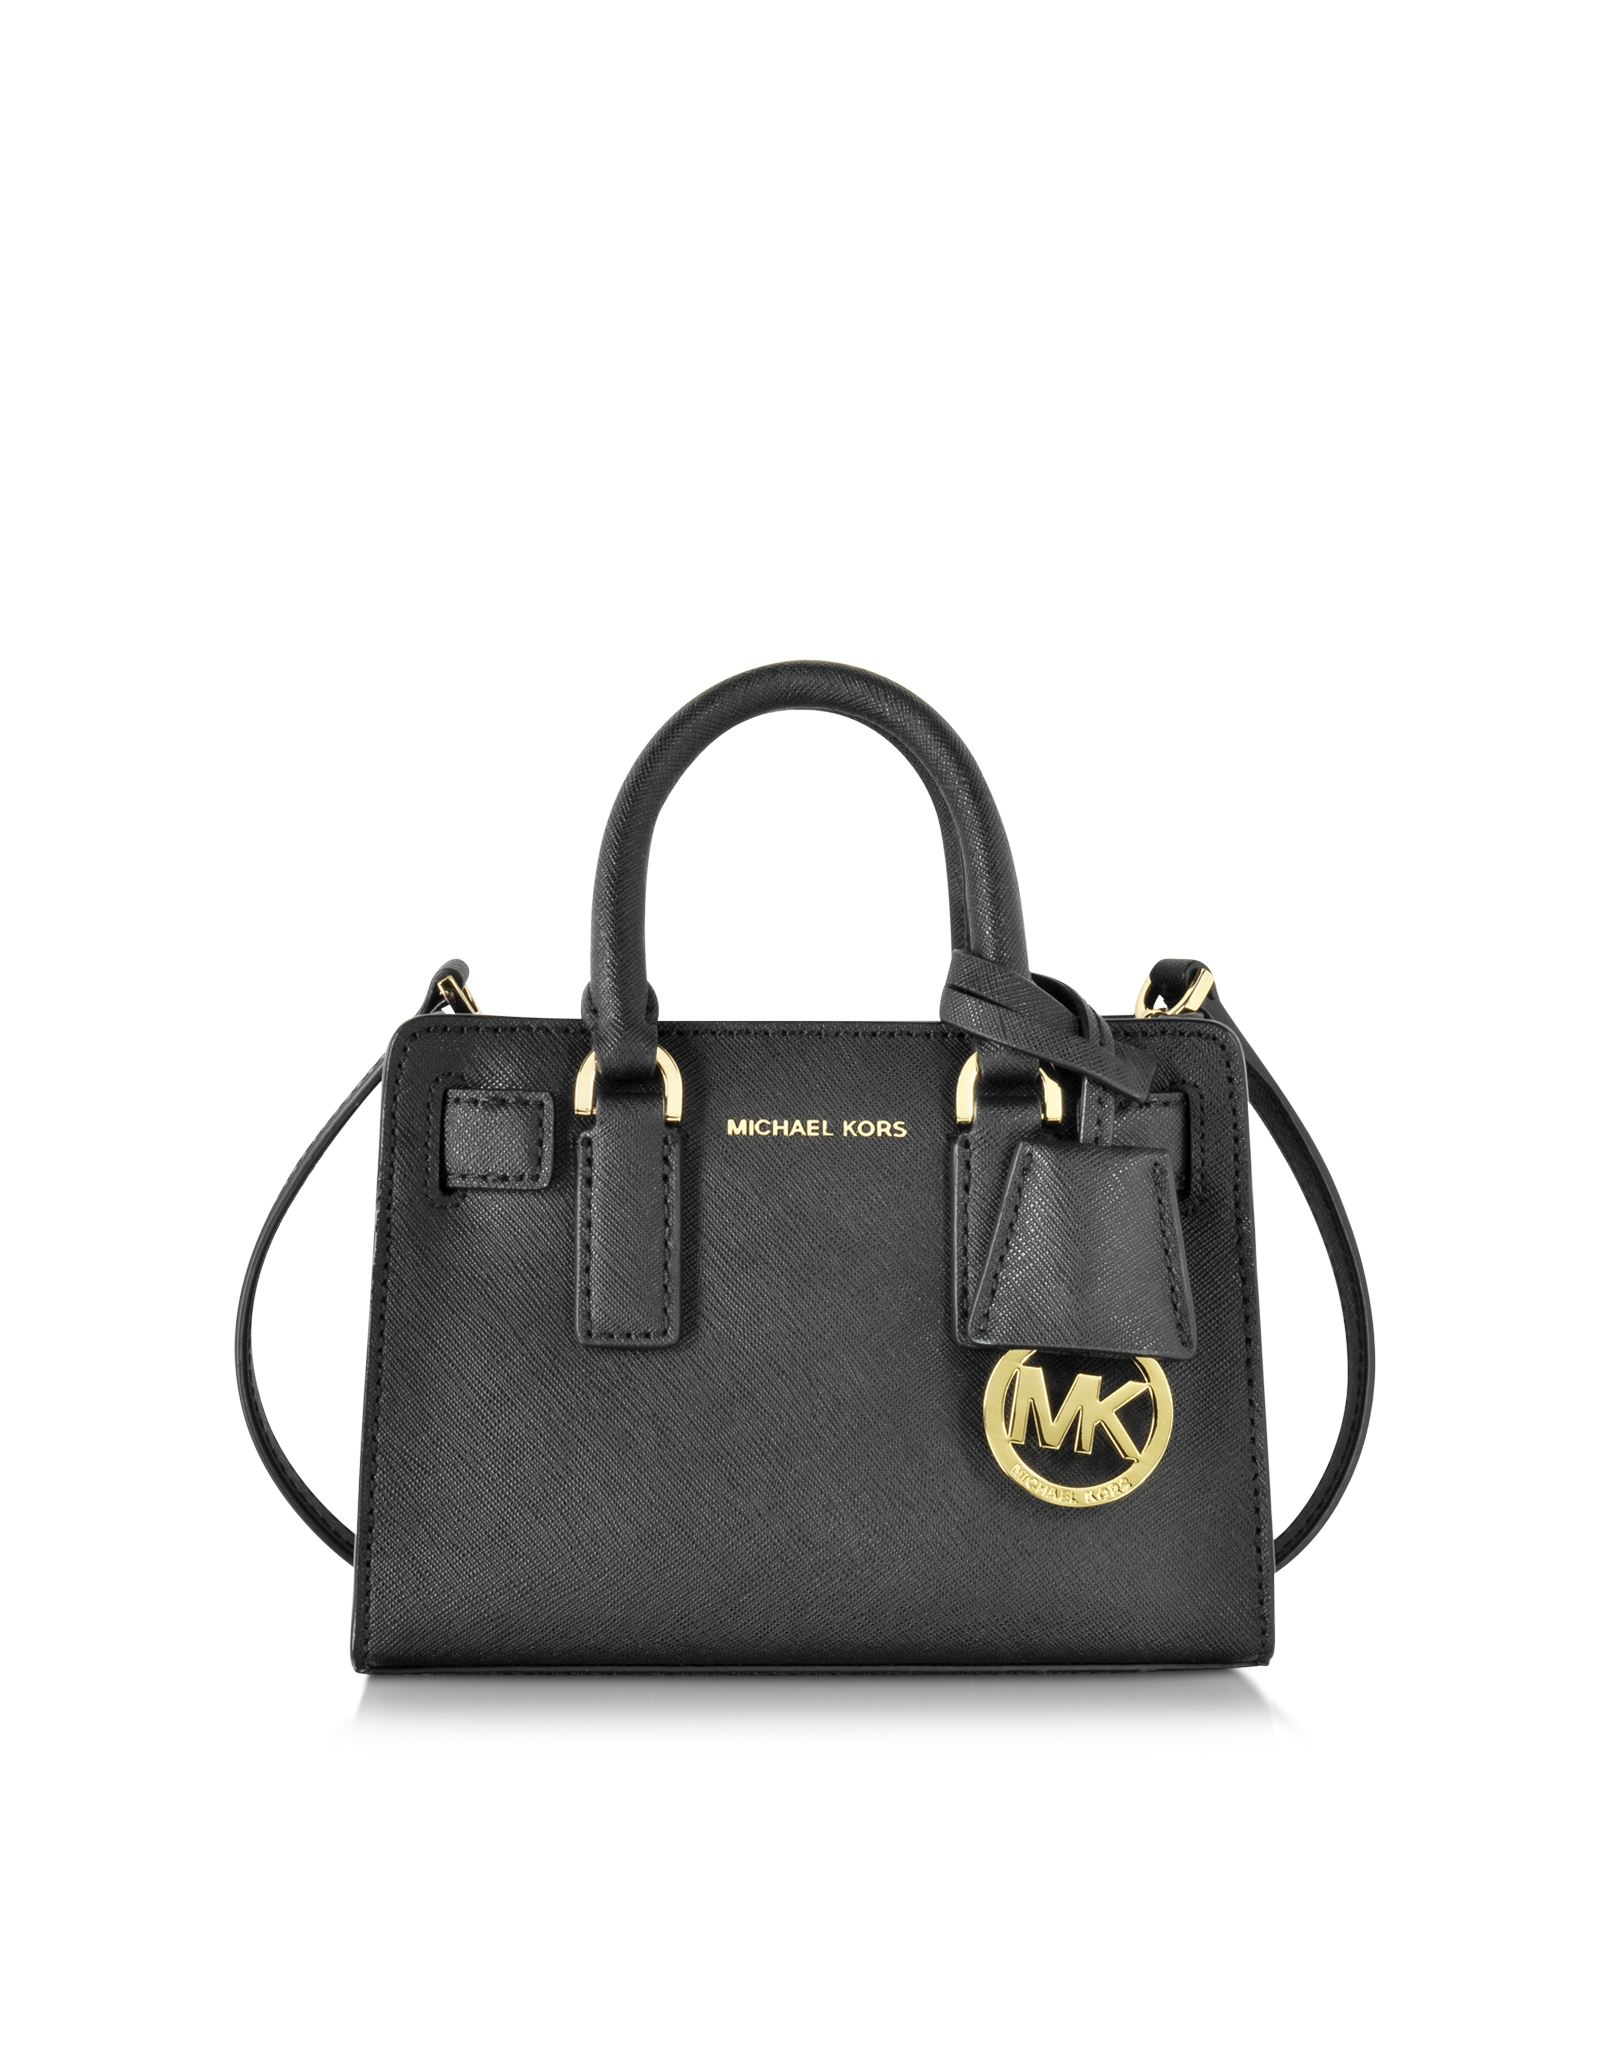 1fd7603ea533 Lyst - Michael Kors Dillon Black Saffiano Leather Extra Small ...